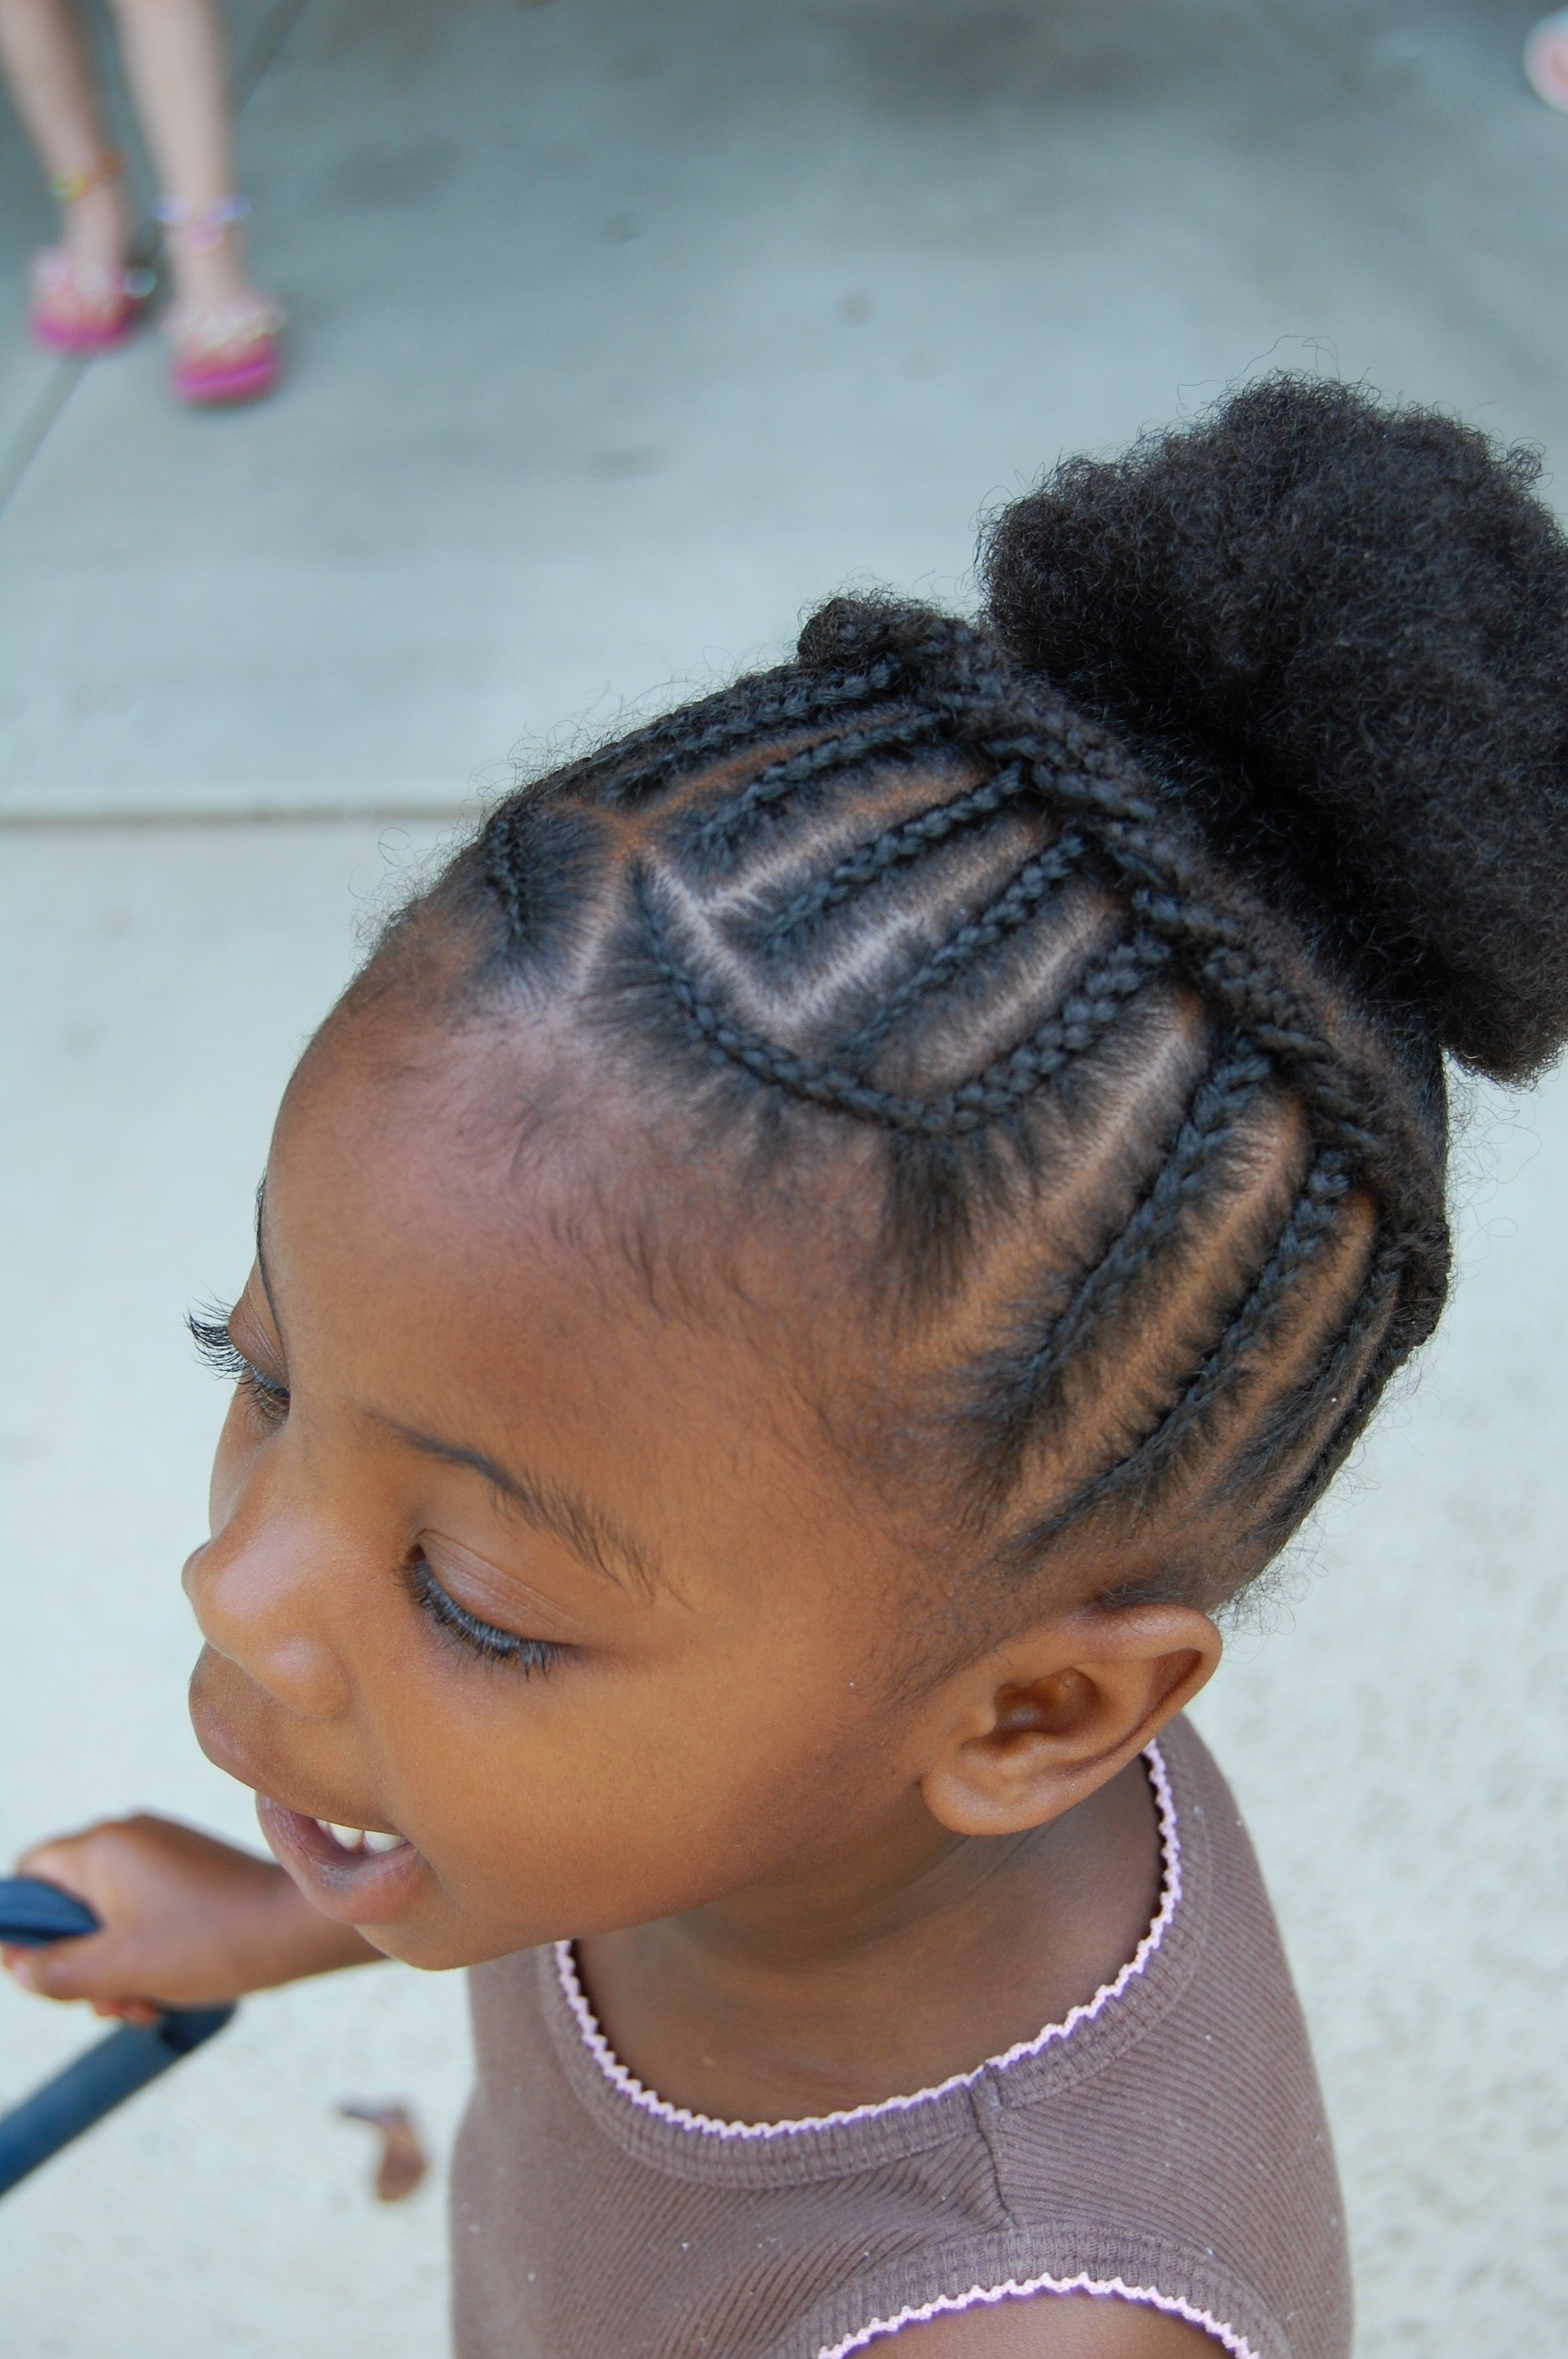 New 10 Best Hairstyles For 10 Year Old Black Girls 2017 Hair Ideas With Pictures Original 1024 x 768